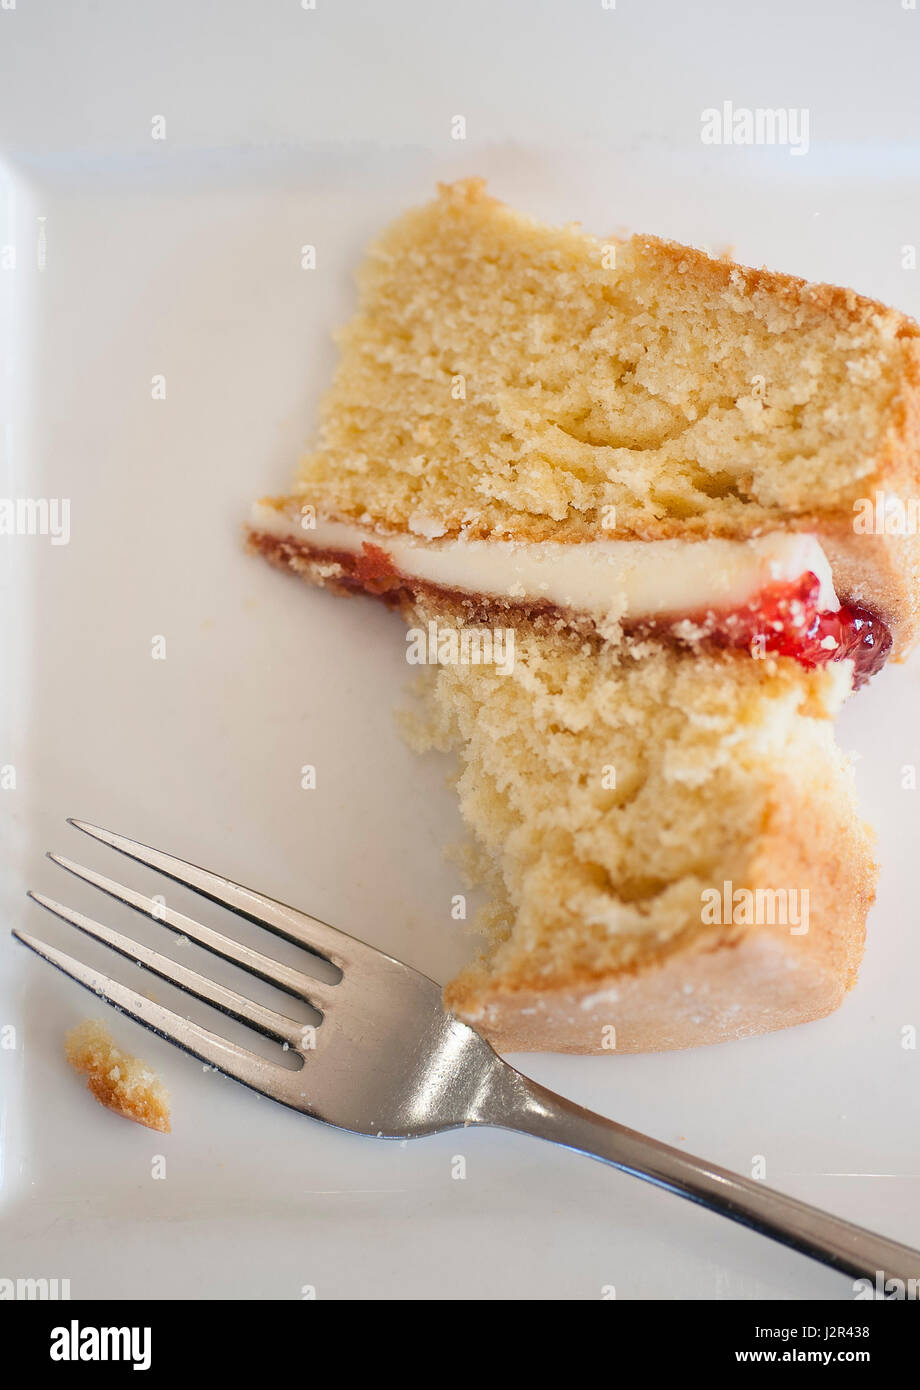 Food; Coffee and Cake; Victoria Sponge Cake; Dessert; Pudding; Sweet; Treat; Baked; Baking; Fork; Plate; Partially - Stock Image